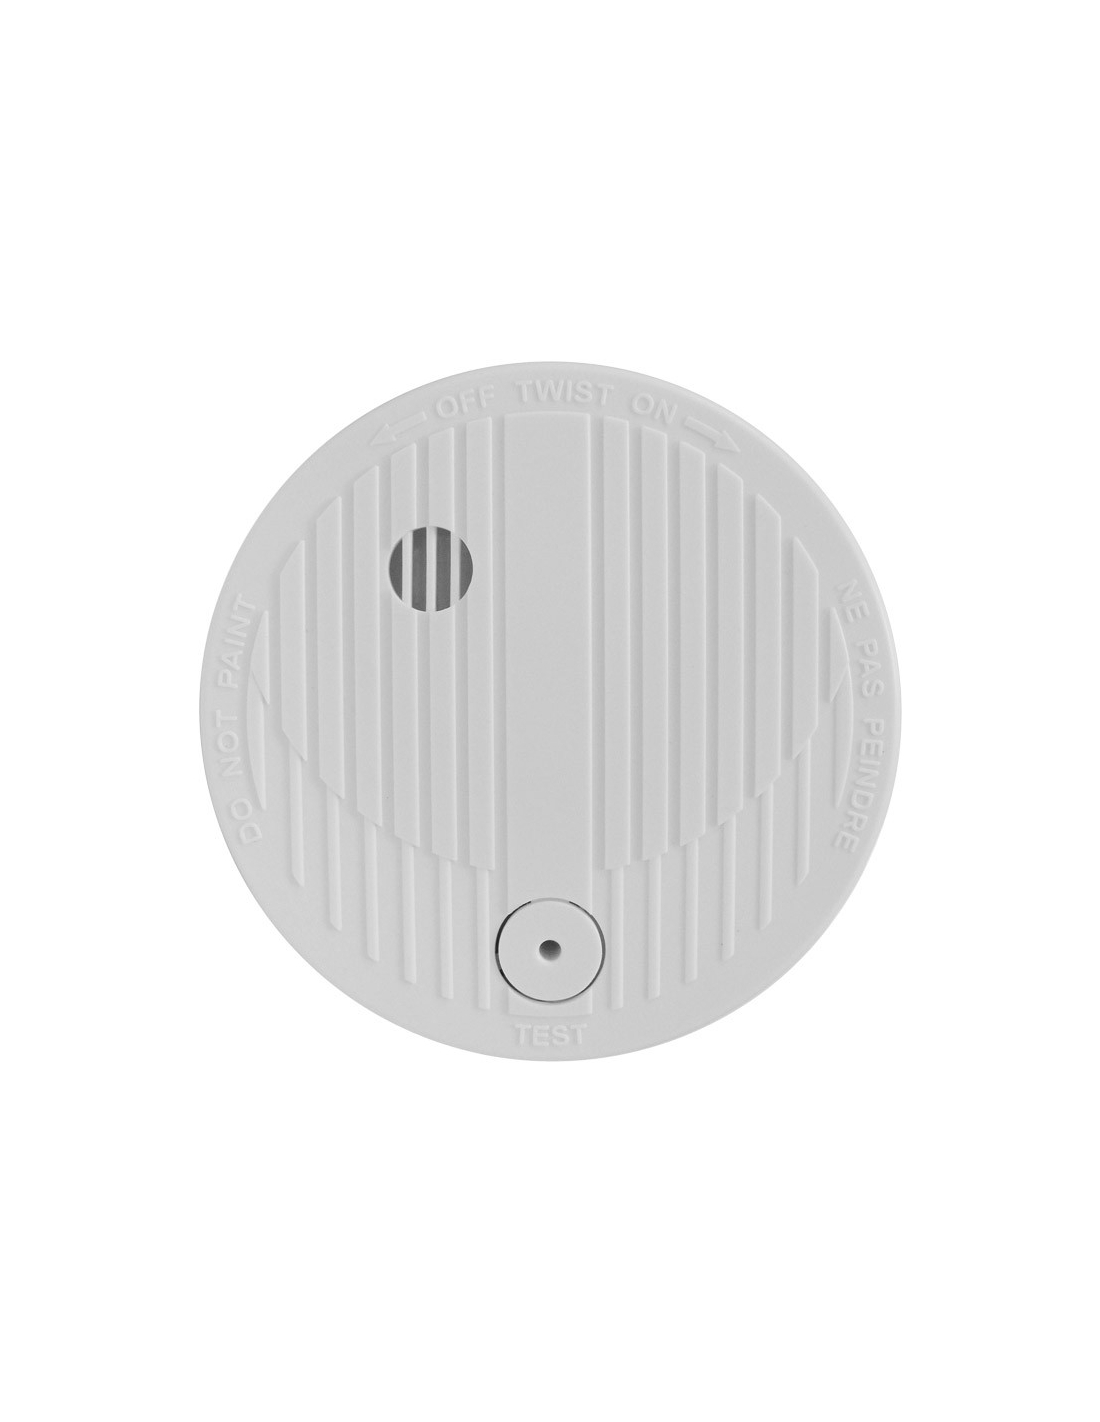 watchguard alc smk1 2020 wireless smoke detector infront technologies cctv. Black Bedroom Furniture Sets. Home Design Ideas